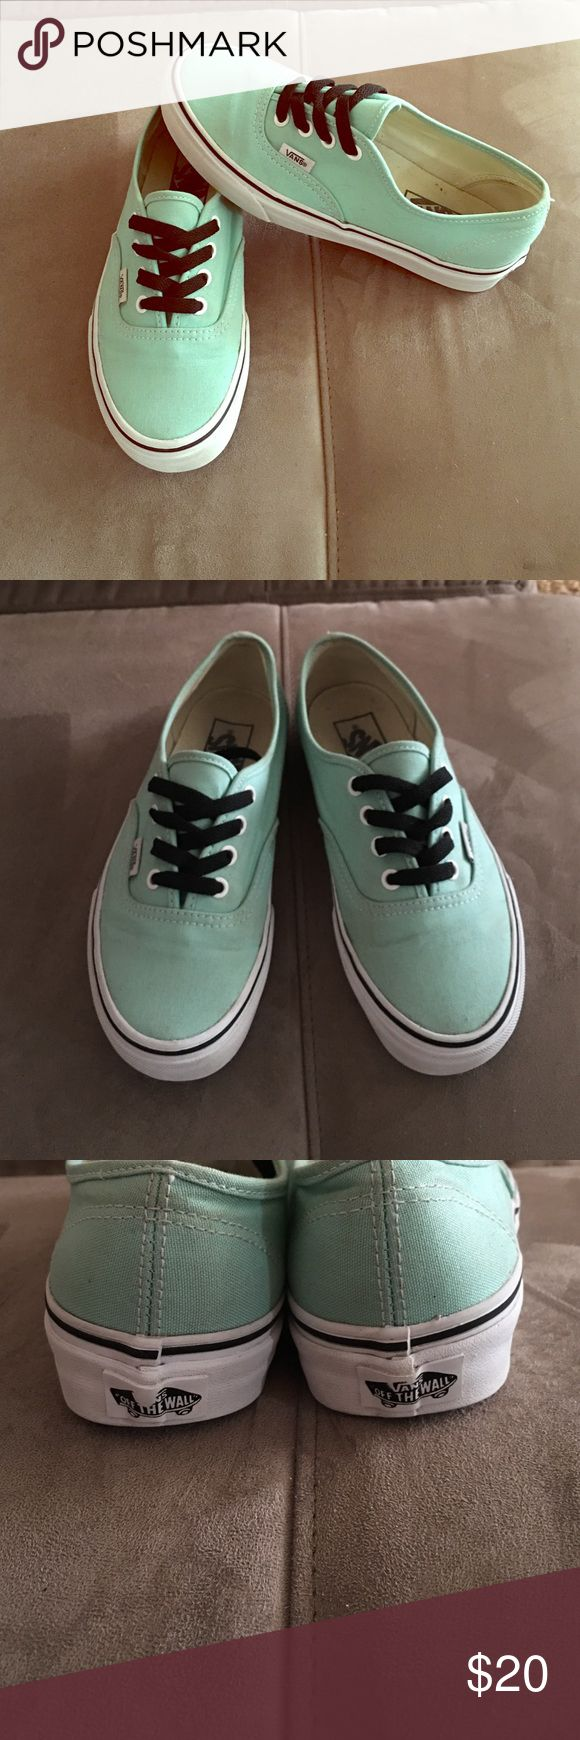 Tiffany Blue VANS Tiffany blue color Vans. You can switch the laces to white if you don't like the black, those are for show. Gently worn! Offers welcome! Discount on bundles! Vans Shoes Sneakers